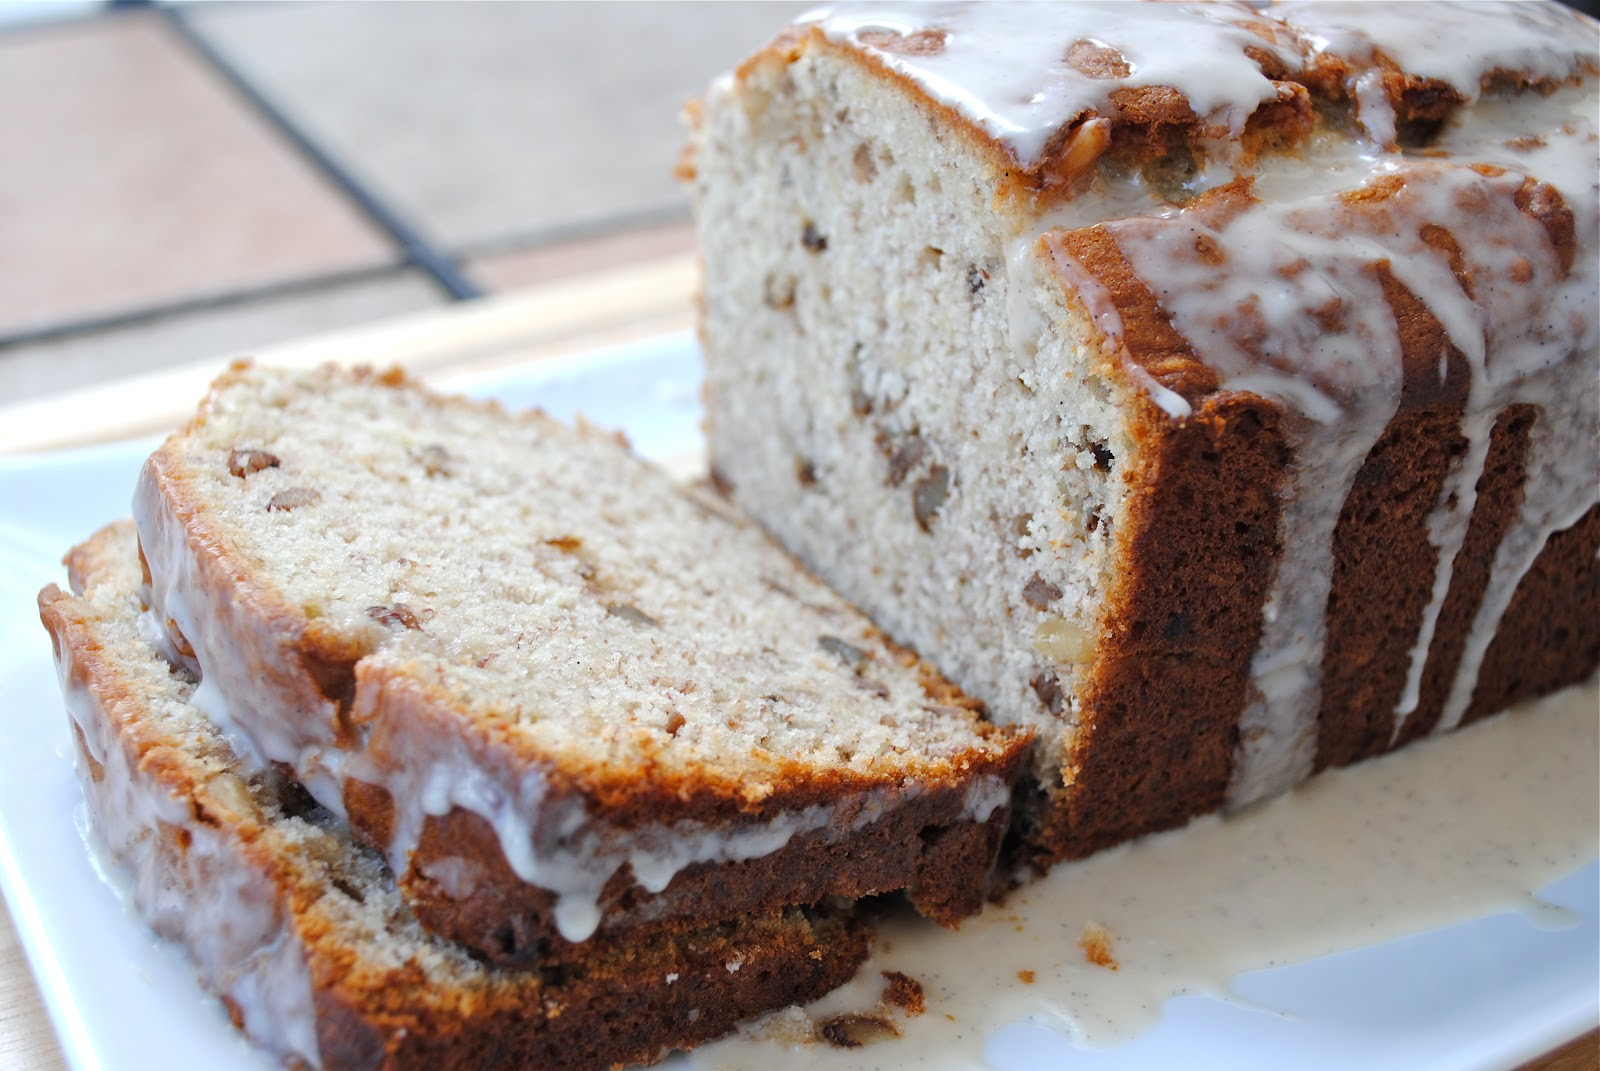 This blog has moved to www.tartletsweets.com: Bourbon Banana Nut Bread